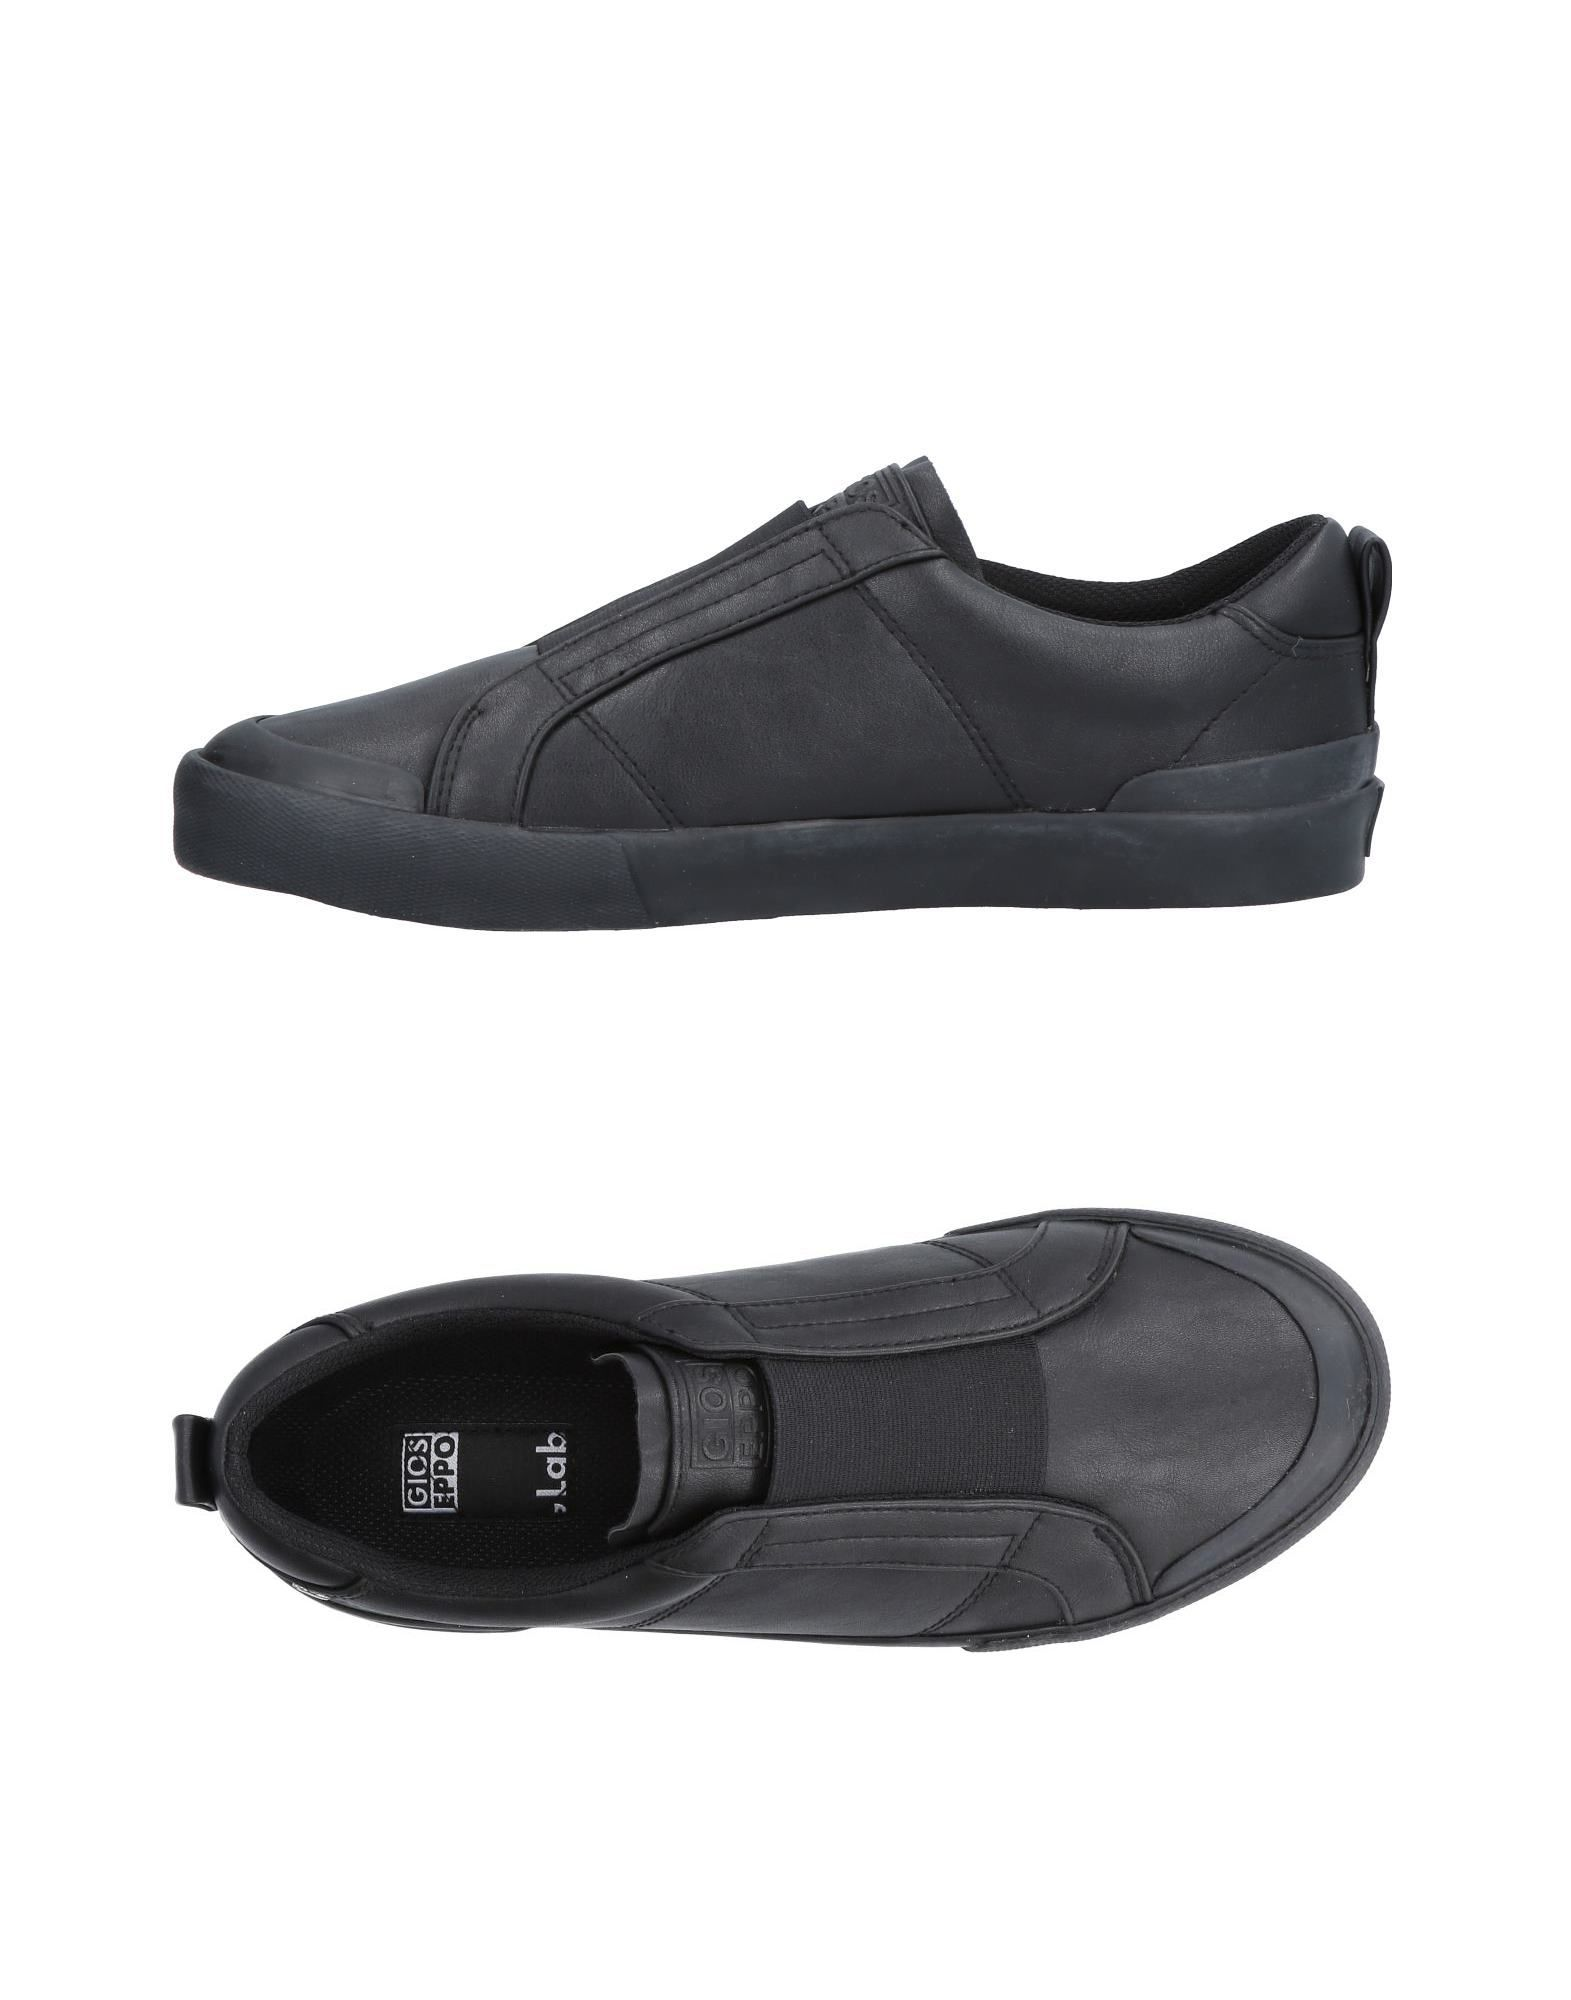 Sneakers Gioseppo Homme - Sneakers Gioseppo  Noir Spécial temps limité